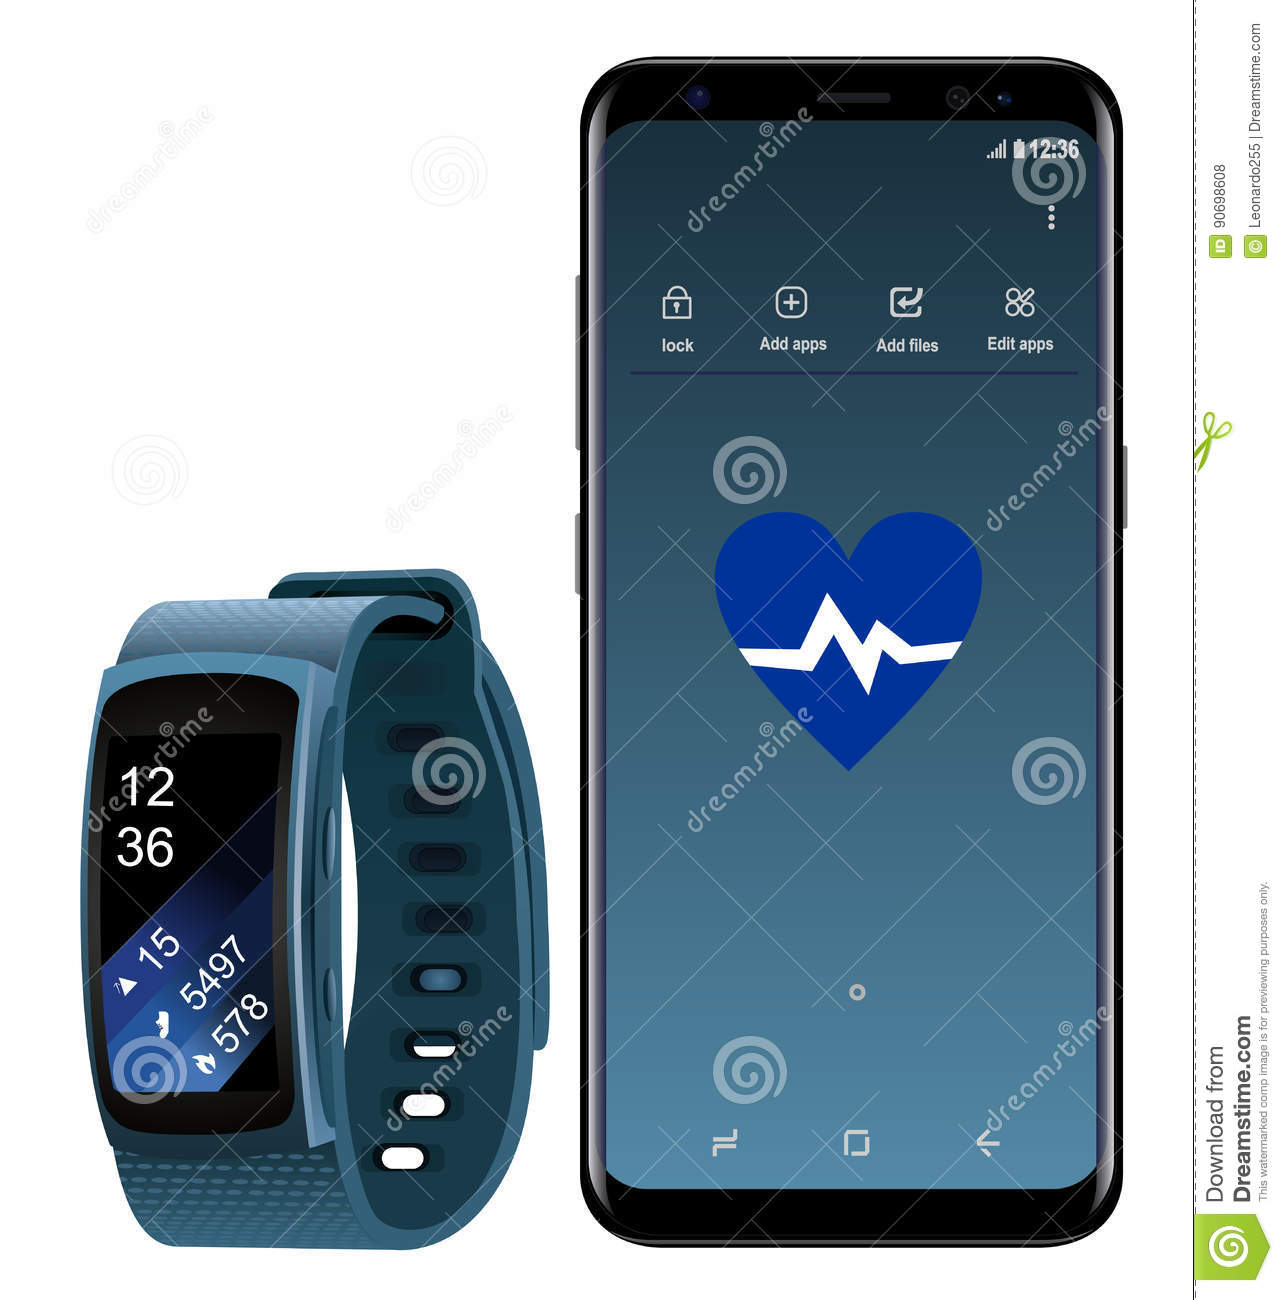 Samsung Galaxy S8 And Smartwatch Gear Fit Editorial Stock